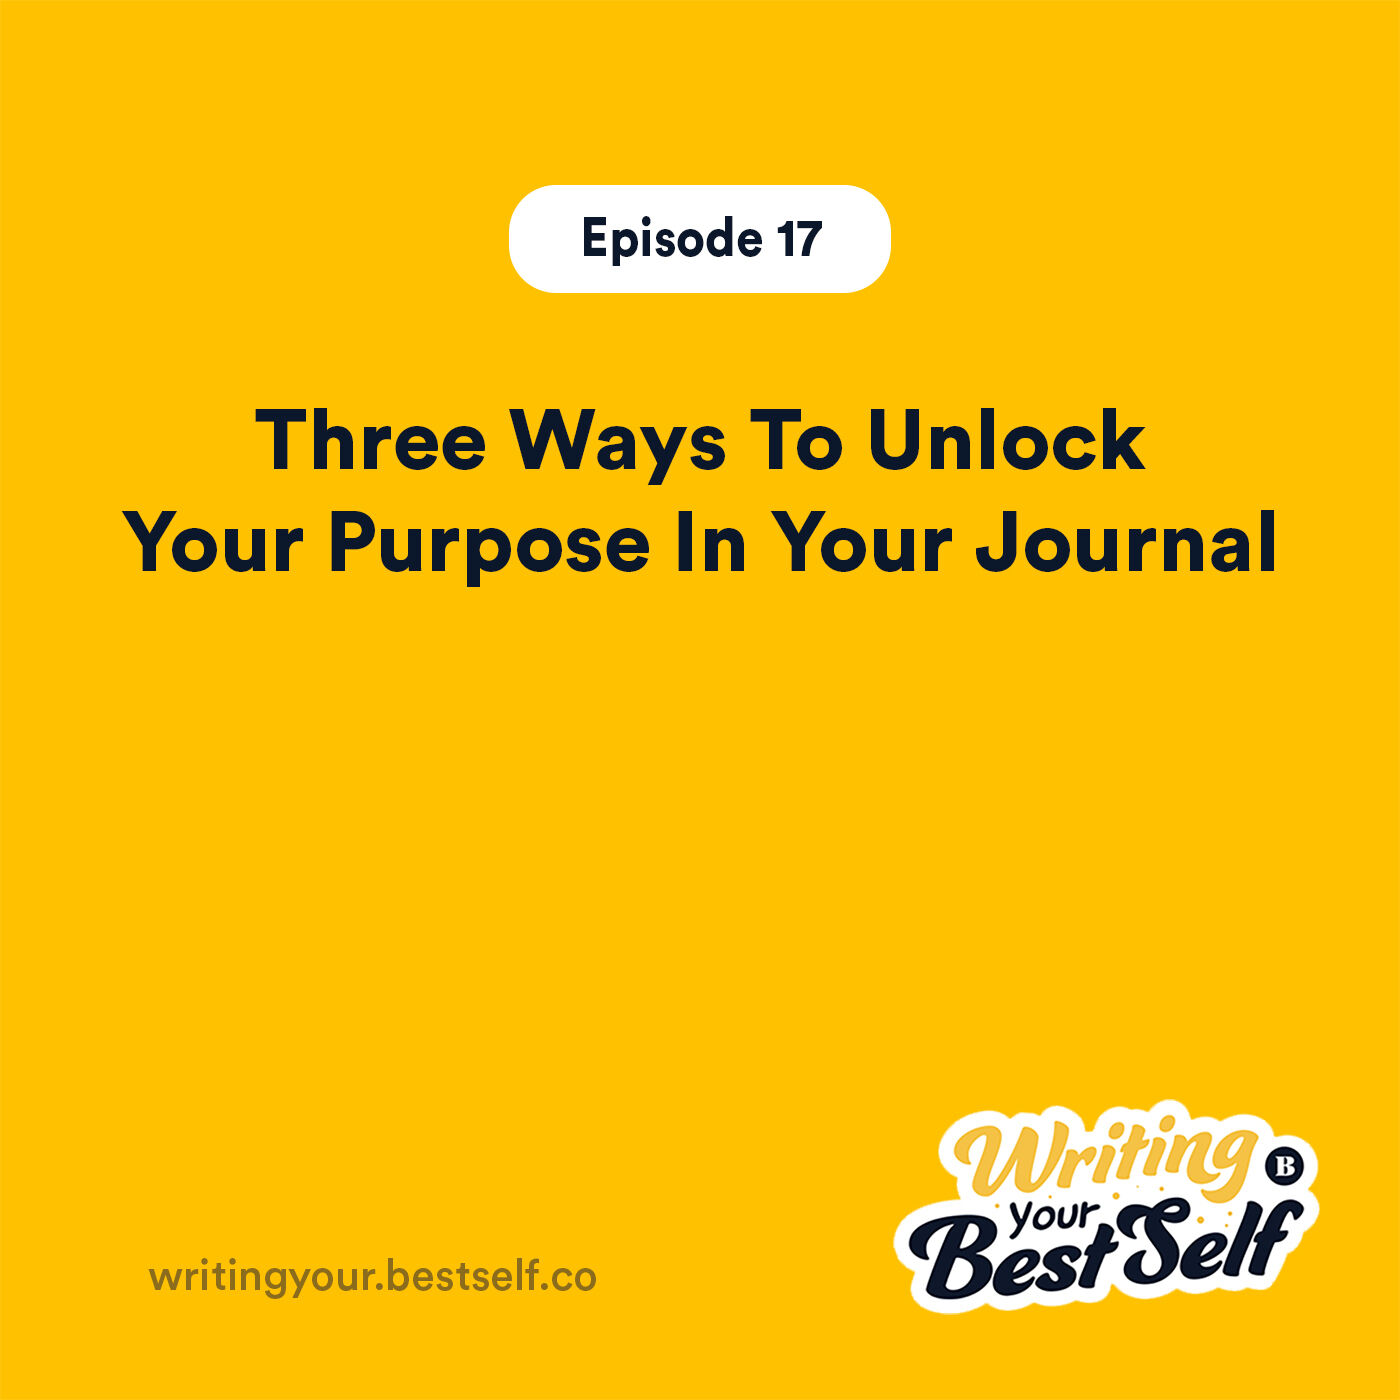 Three Ways To Unlock Your Purpose In Your Journal